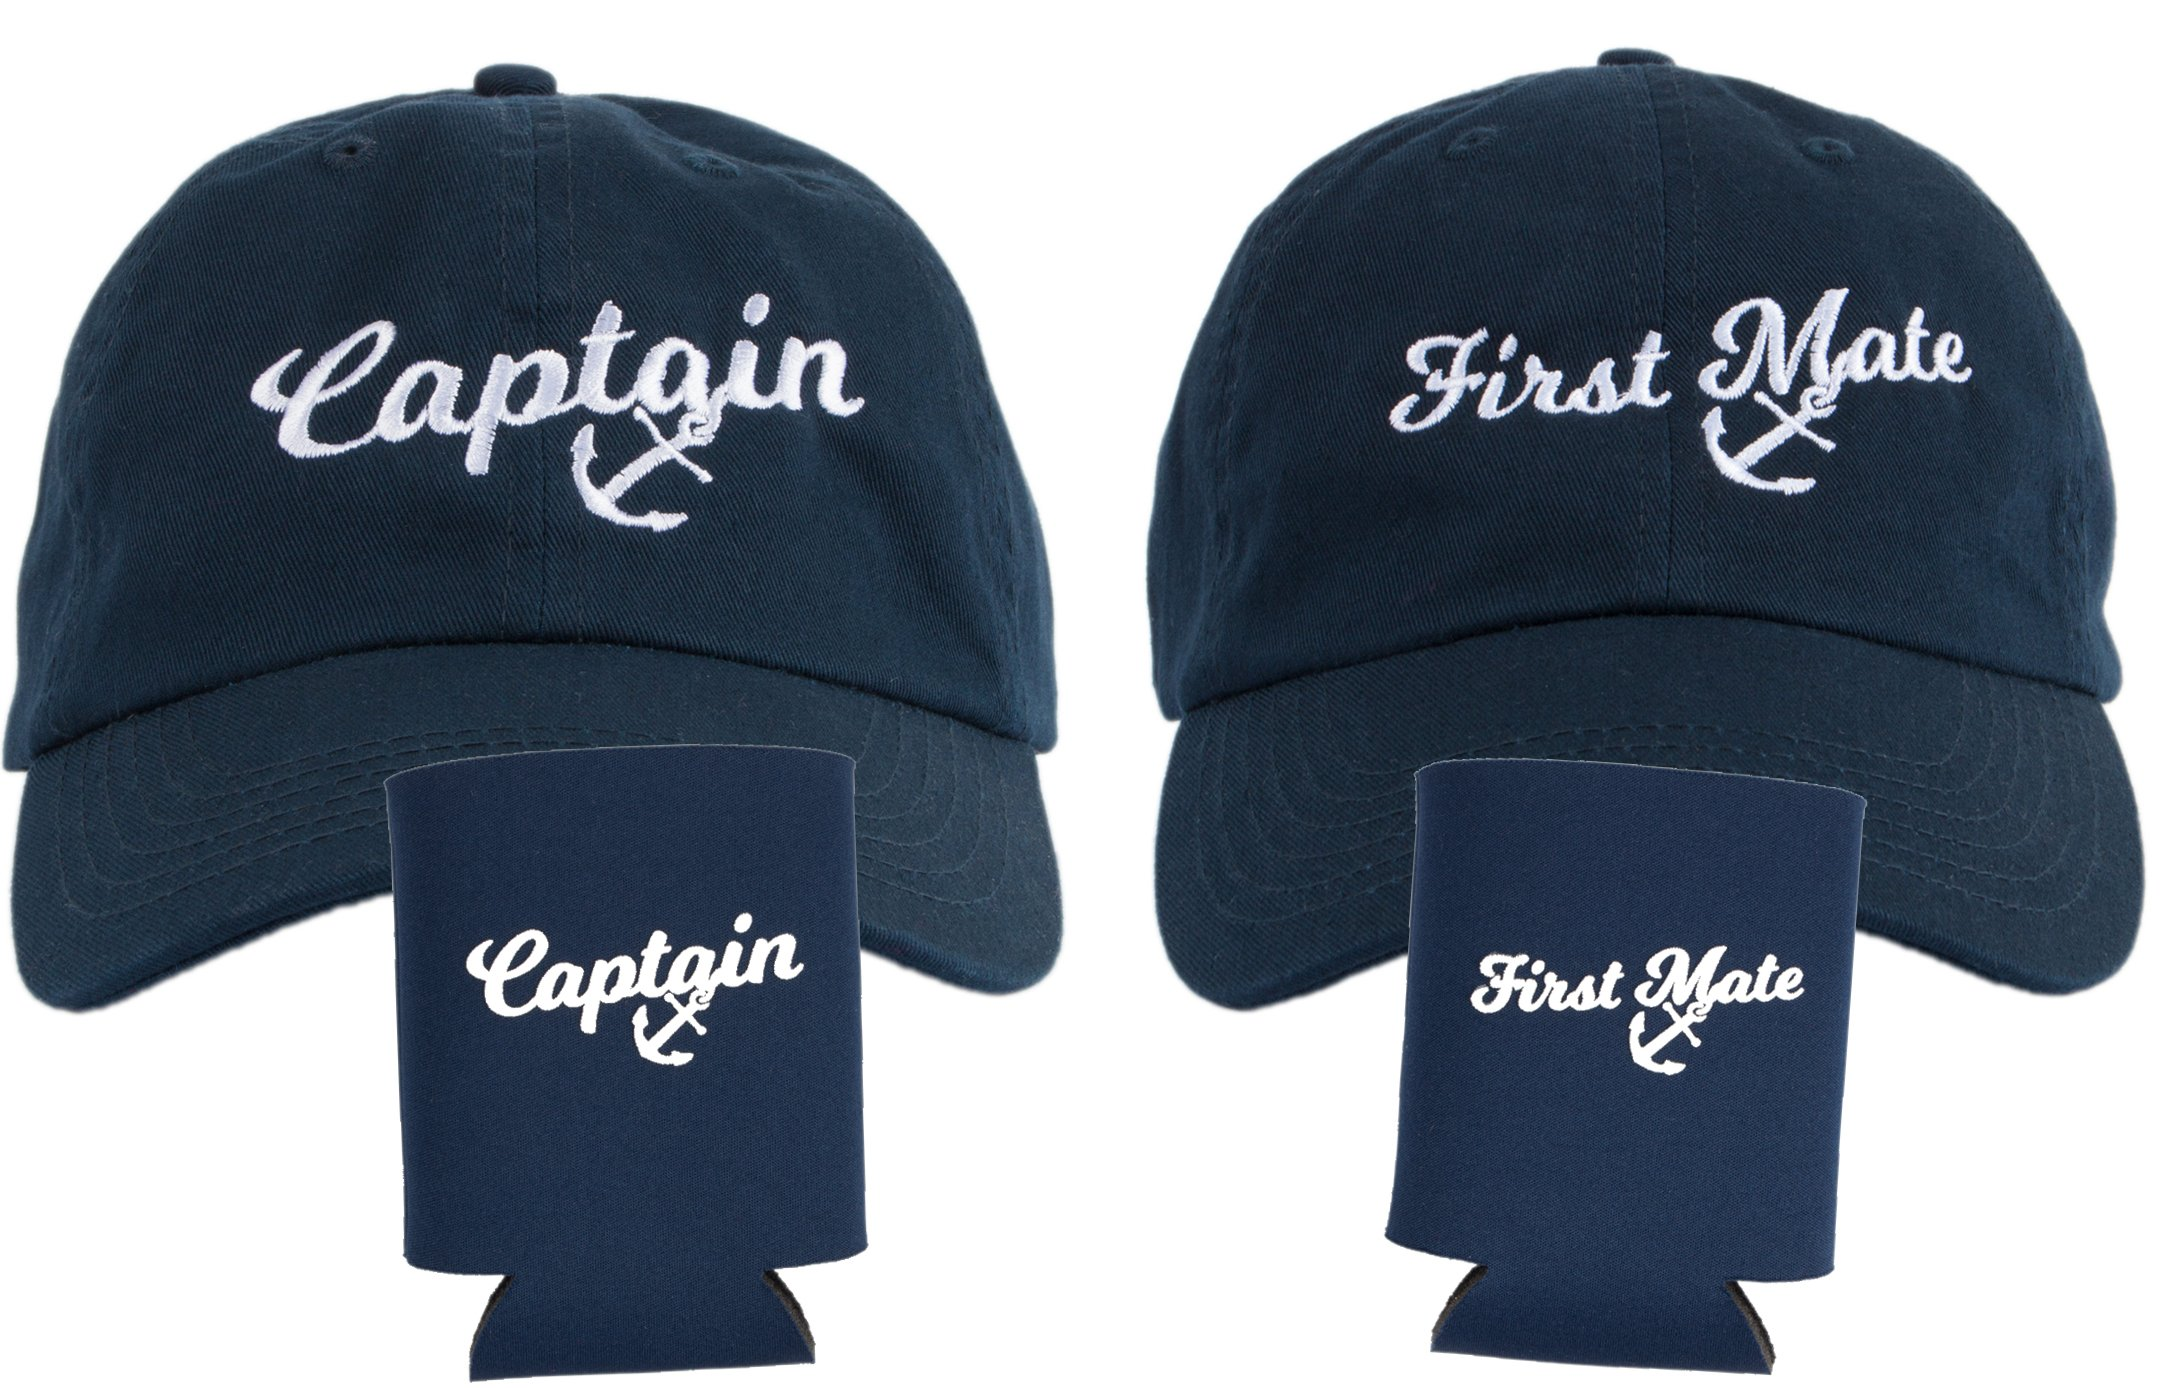 Captain Hat & First Mate | Matching Skipper Boating Baseball Caps & Beer Holders Navy by Ann Arbor T-shirt Co.